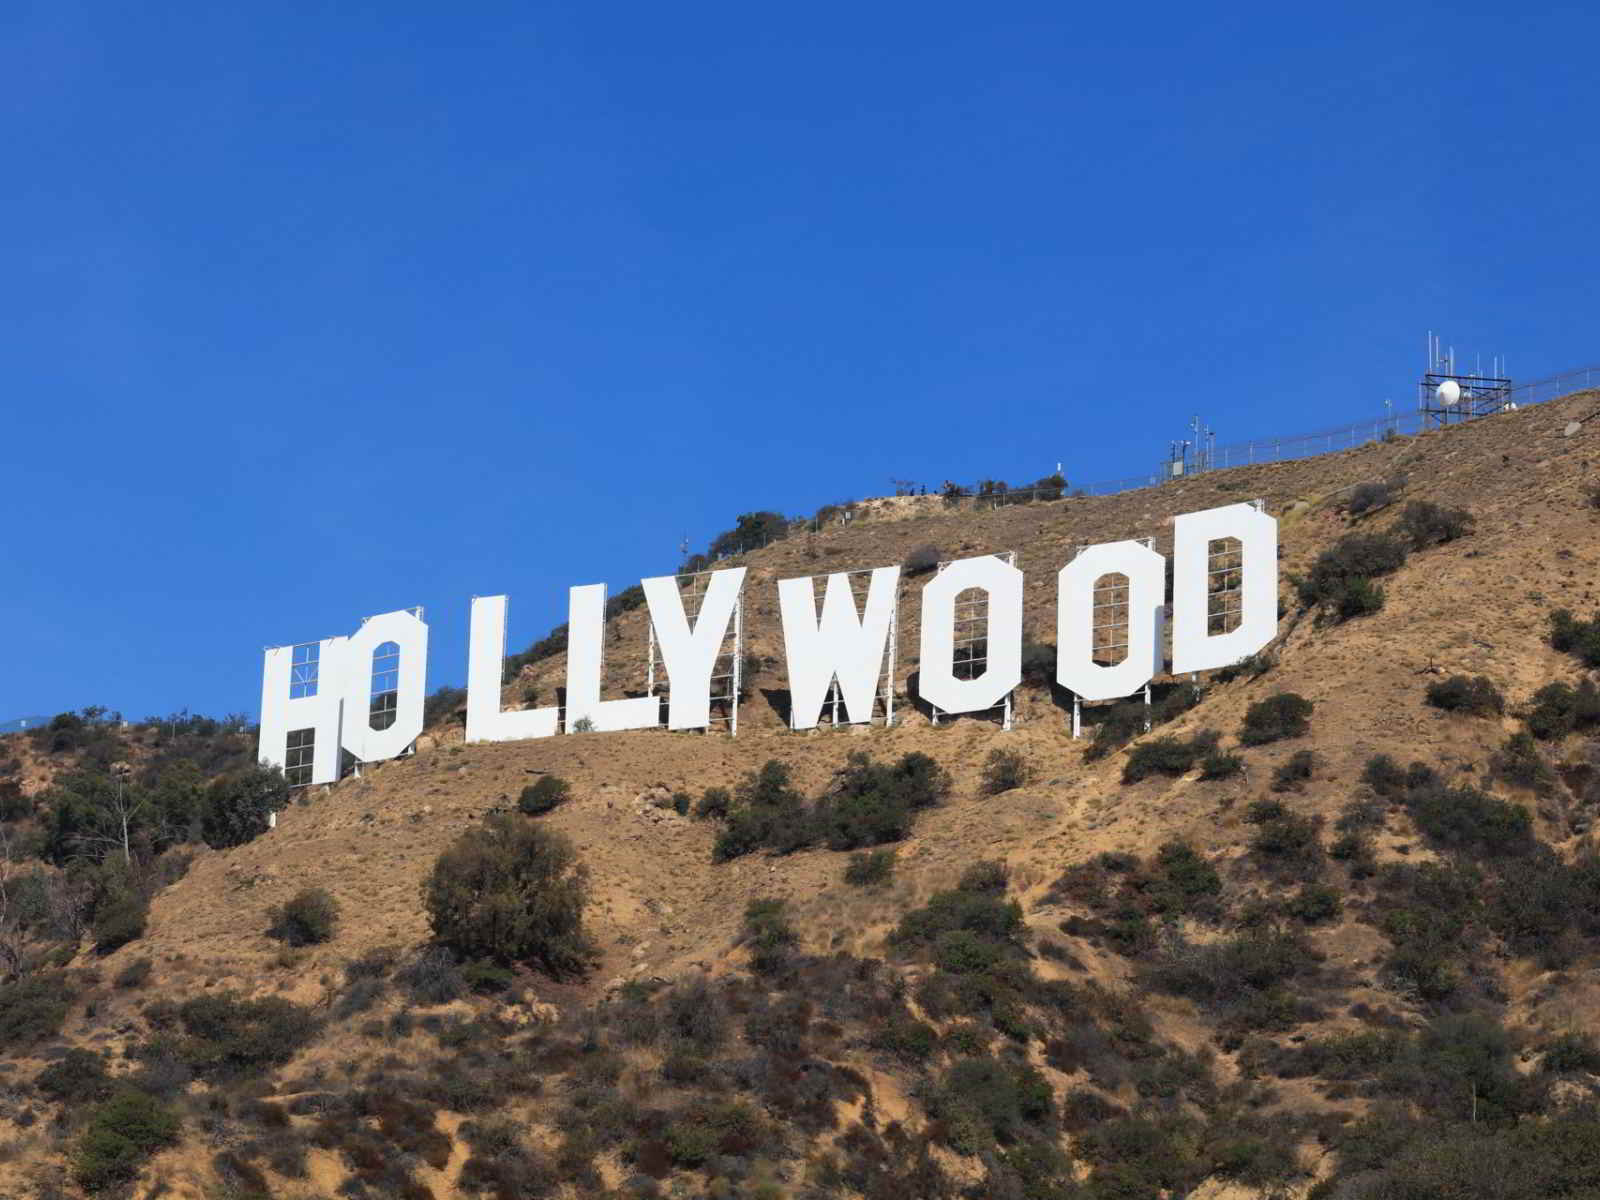 Aneddoti e curiosità sui film di Hollywood